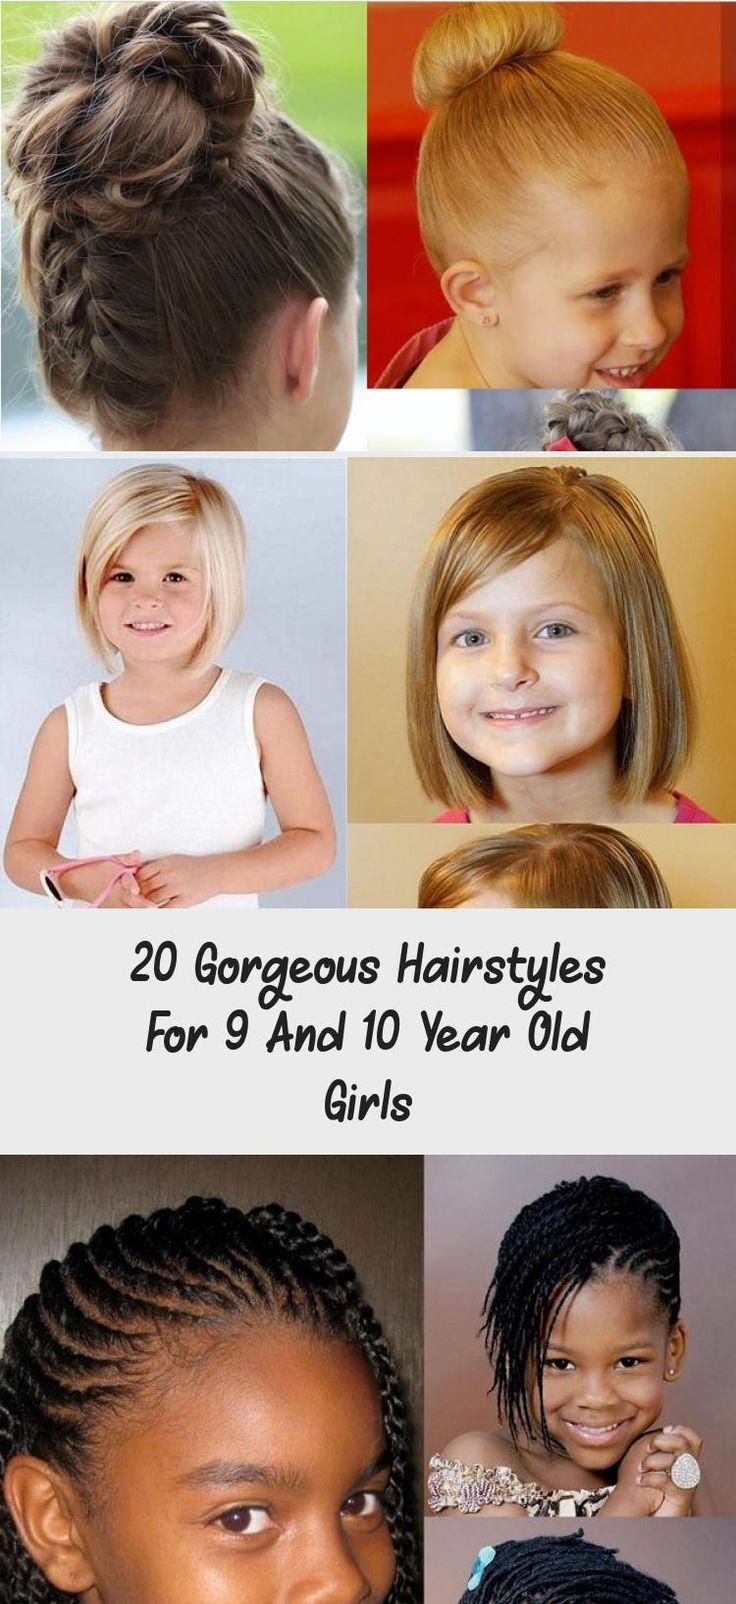 20 Gorgeous Hairstyles for 9 And 10 Year Old Girls - Child Insider #EverydayHairstyles ...